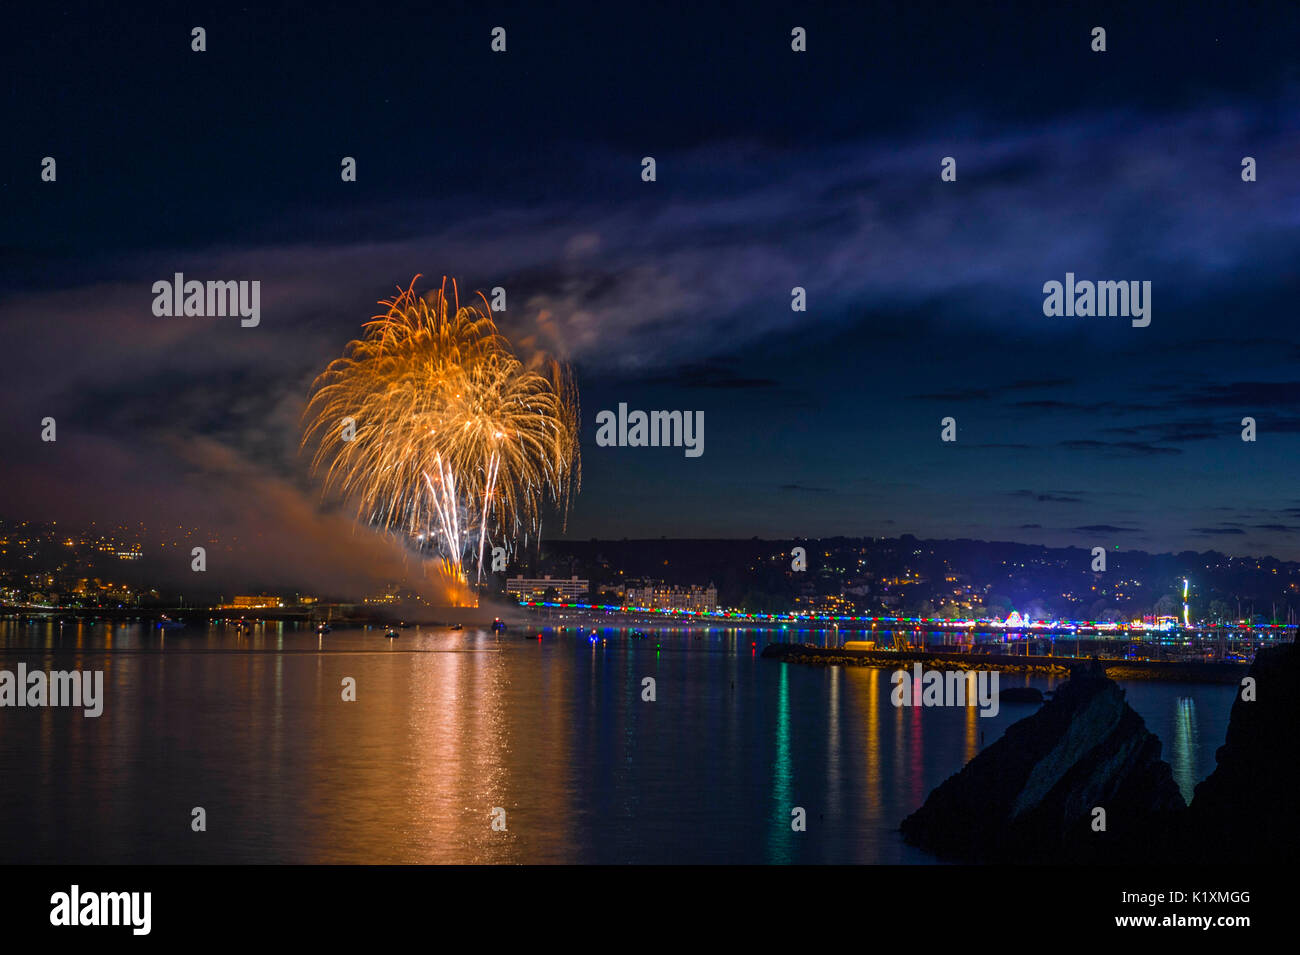 Great British Coastlines, featuring the amazing Torbay Regatta Fireworks display at Corbyn's Head, Torquay on a beautiful summer evening, August 2017 - Stock Image